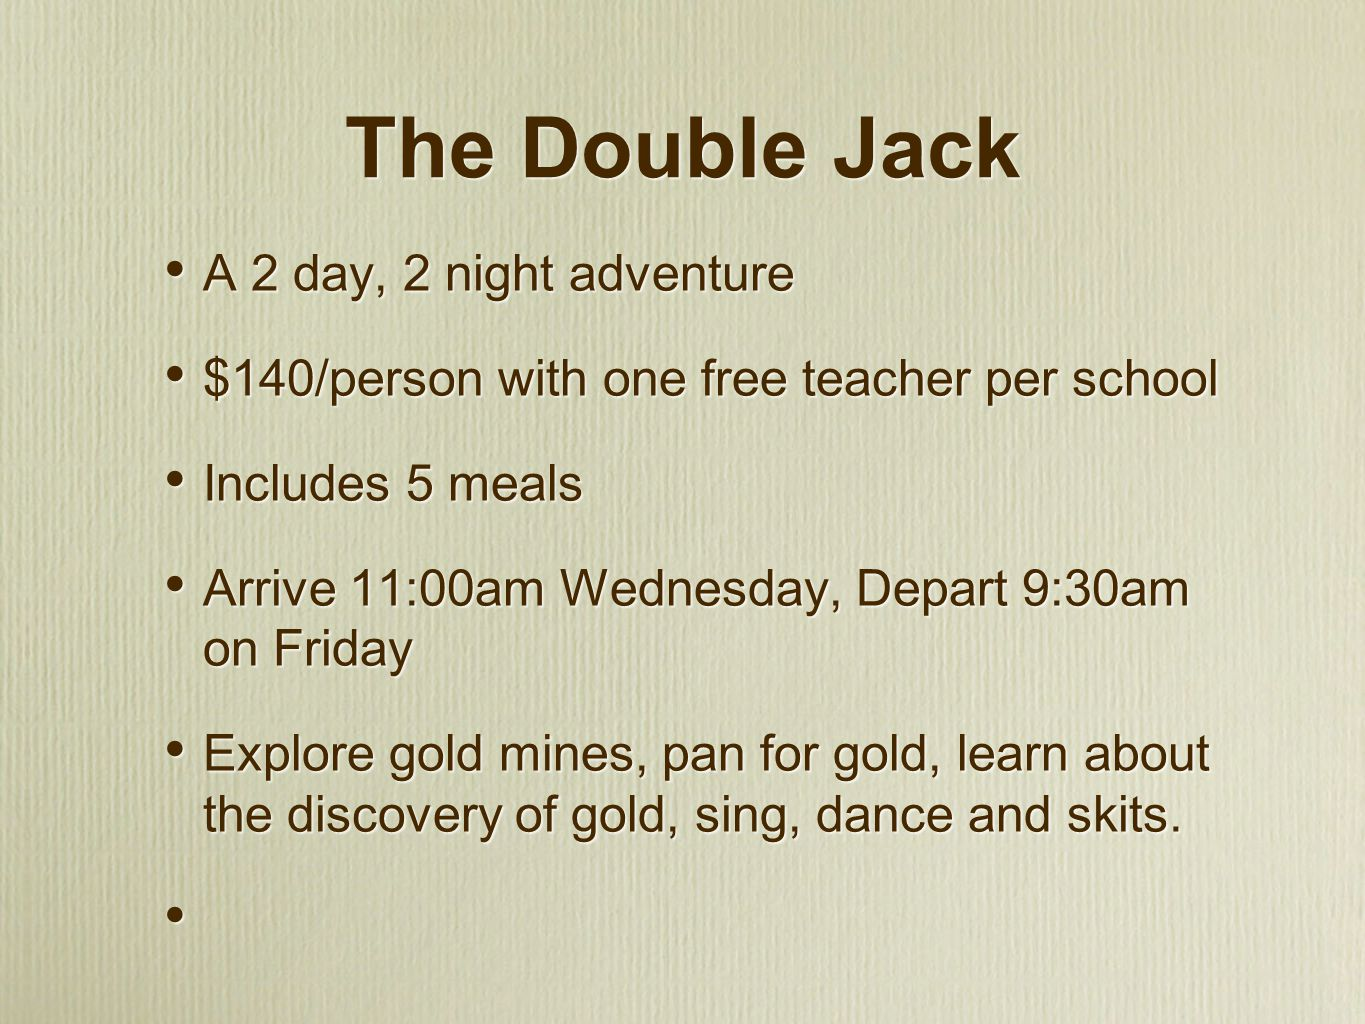 The Double Jack A 2 day, 2 night adventure $140/person with one free teacher per school Includes 5 meals Arrive 11:00am Wednesday, Depart 9:30am on Friday Explore gold mines, pan for gold, learn about the discovery of gold, sing, dance and skits.